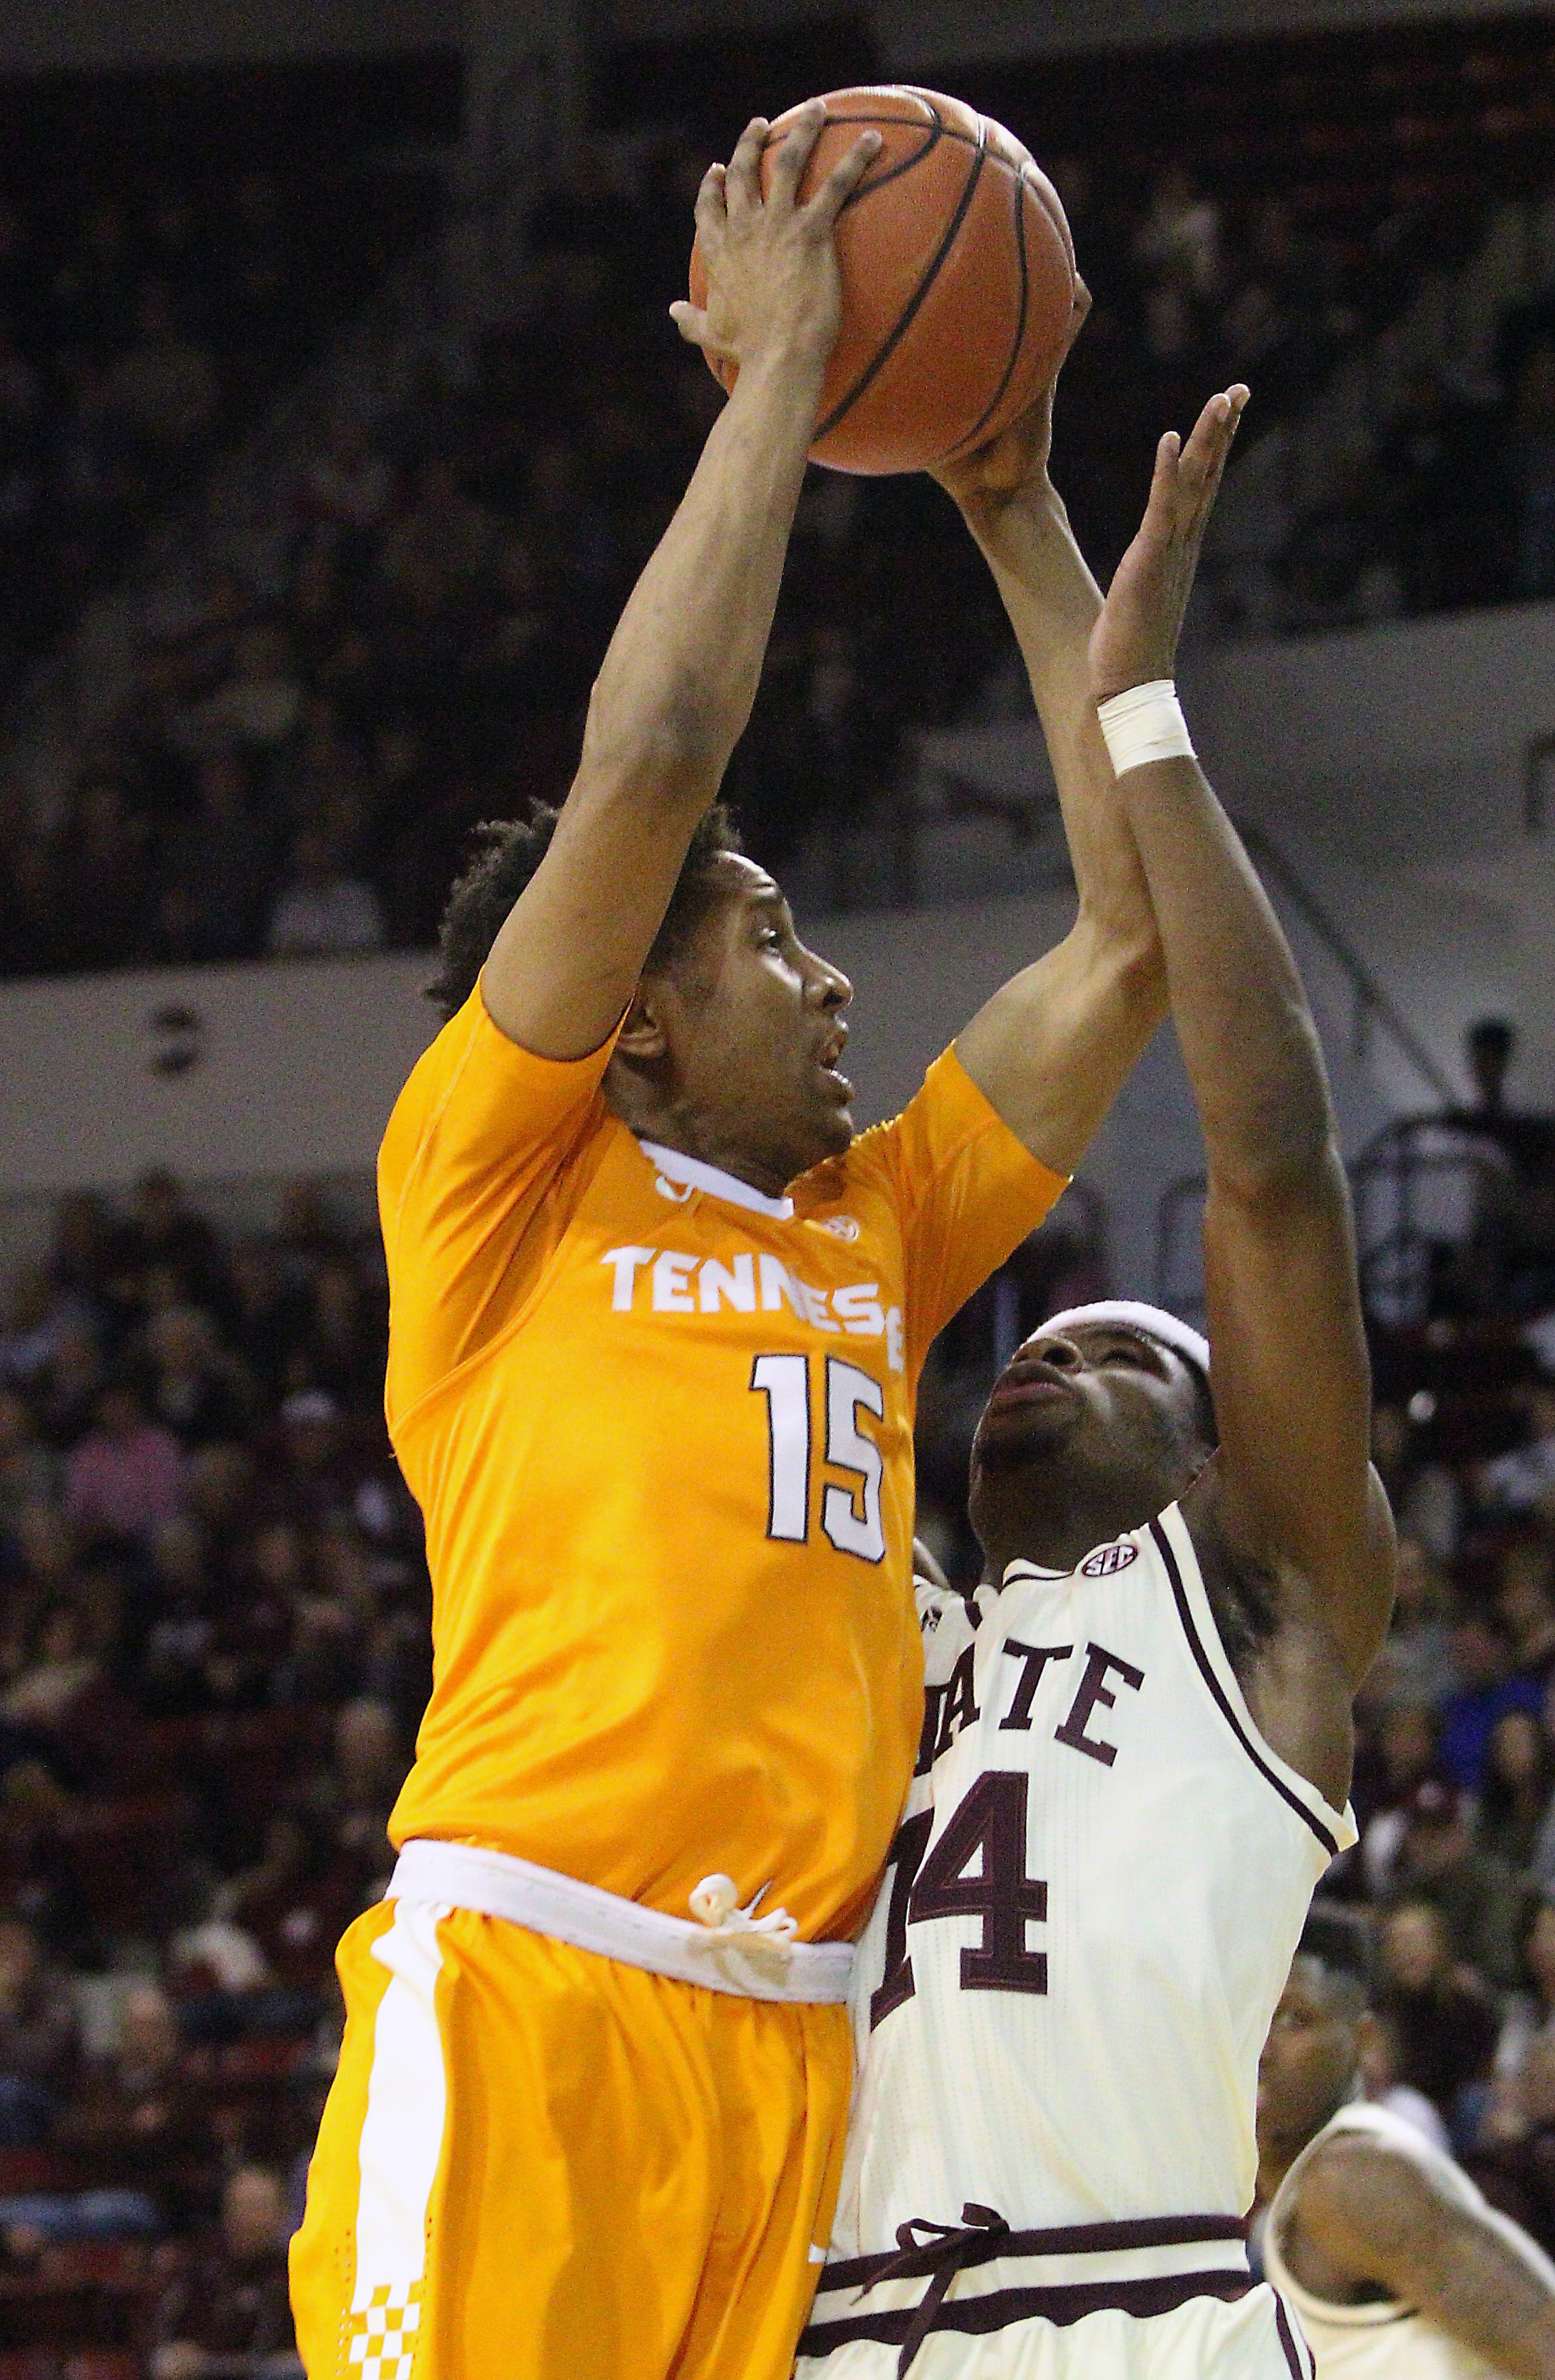 Tennessee guard Detrick Mostella (15) shoots over Mississippi State guard Malik Newman (14) during the first half of an NCAA college basketball game in Starkville, Miss., Saturday, Jan. 16, 2016. Tennessee won 80-75. (AP Photo/Jim Lytle)